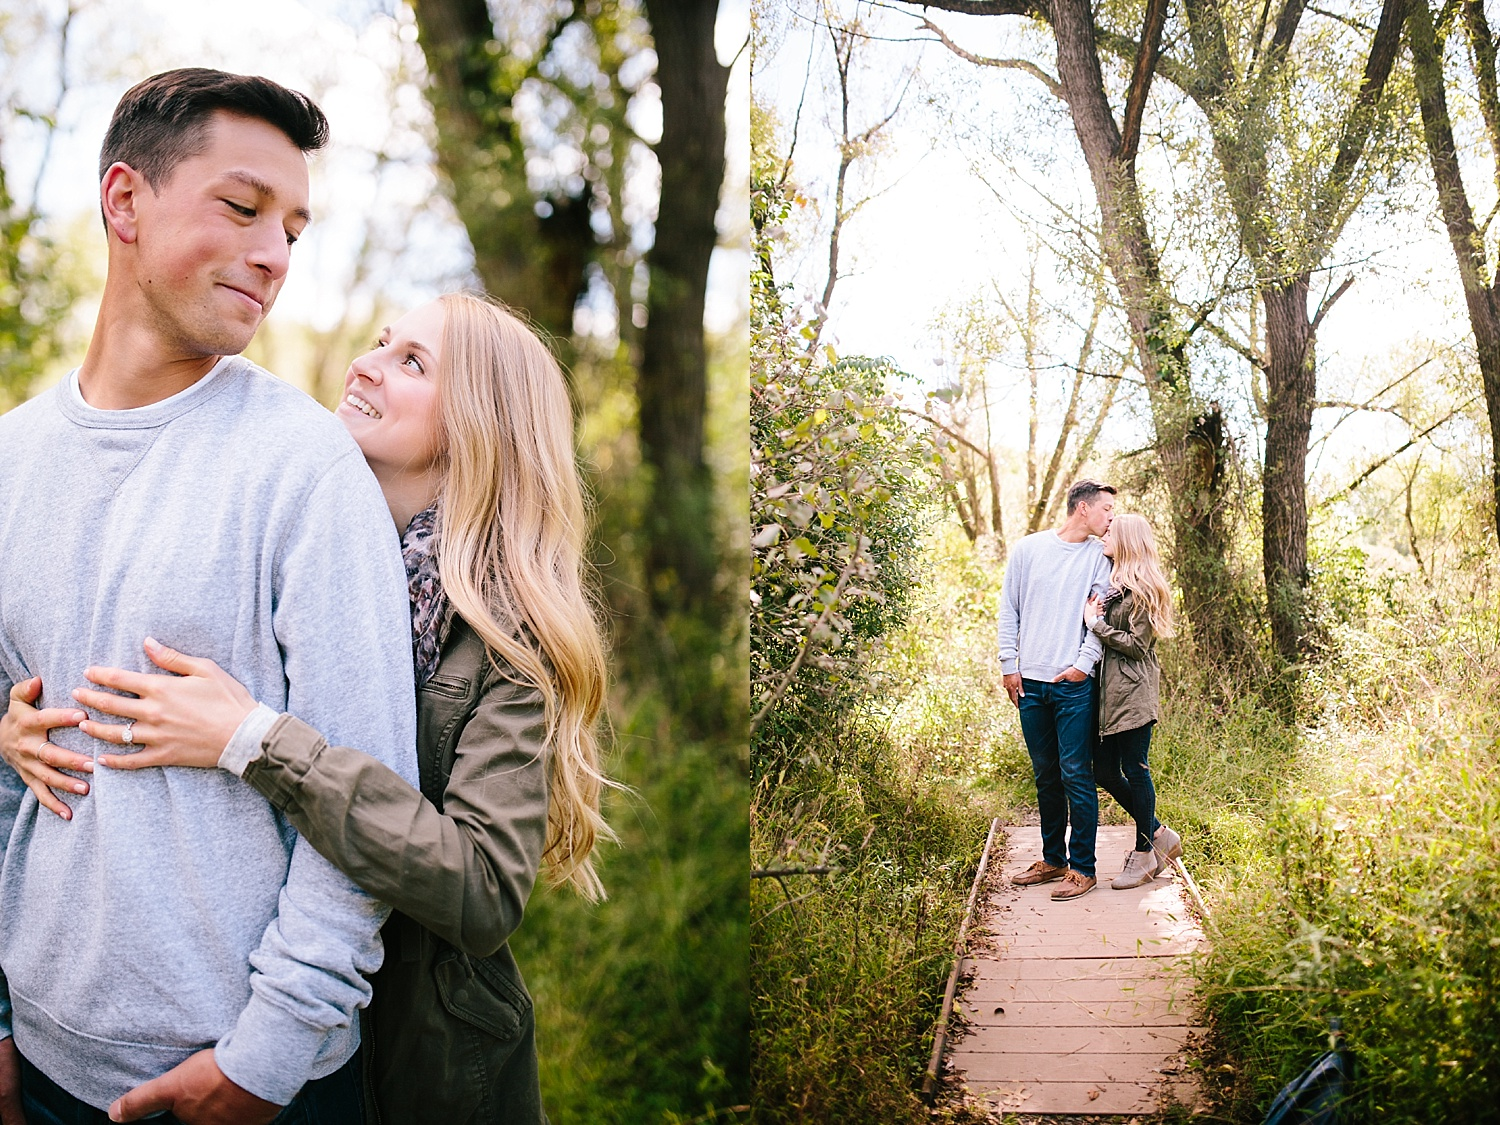 jessanddavid_peacevalleypark_doylestown_engagament_image_130.jpg